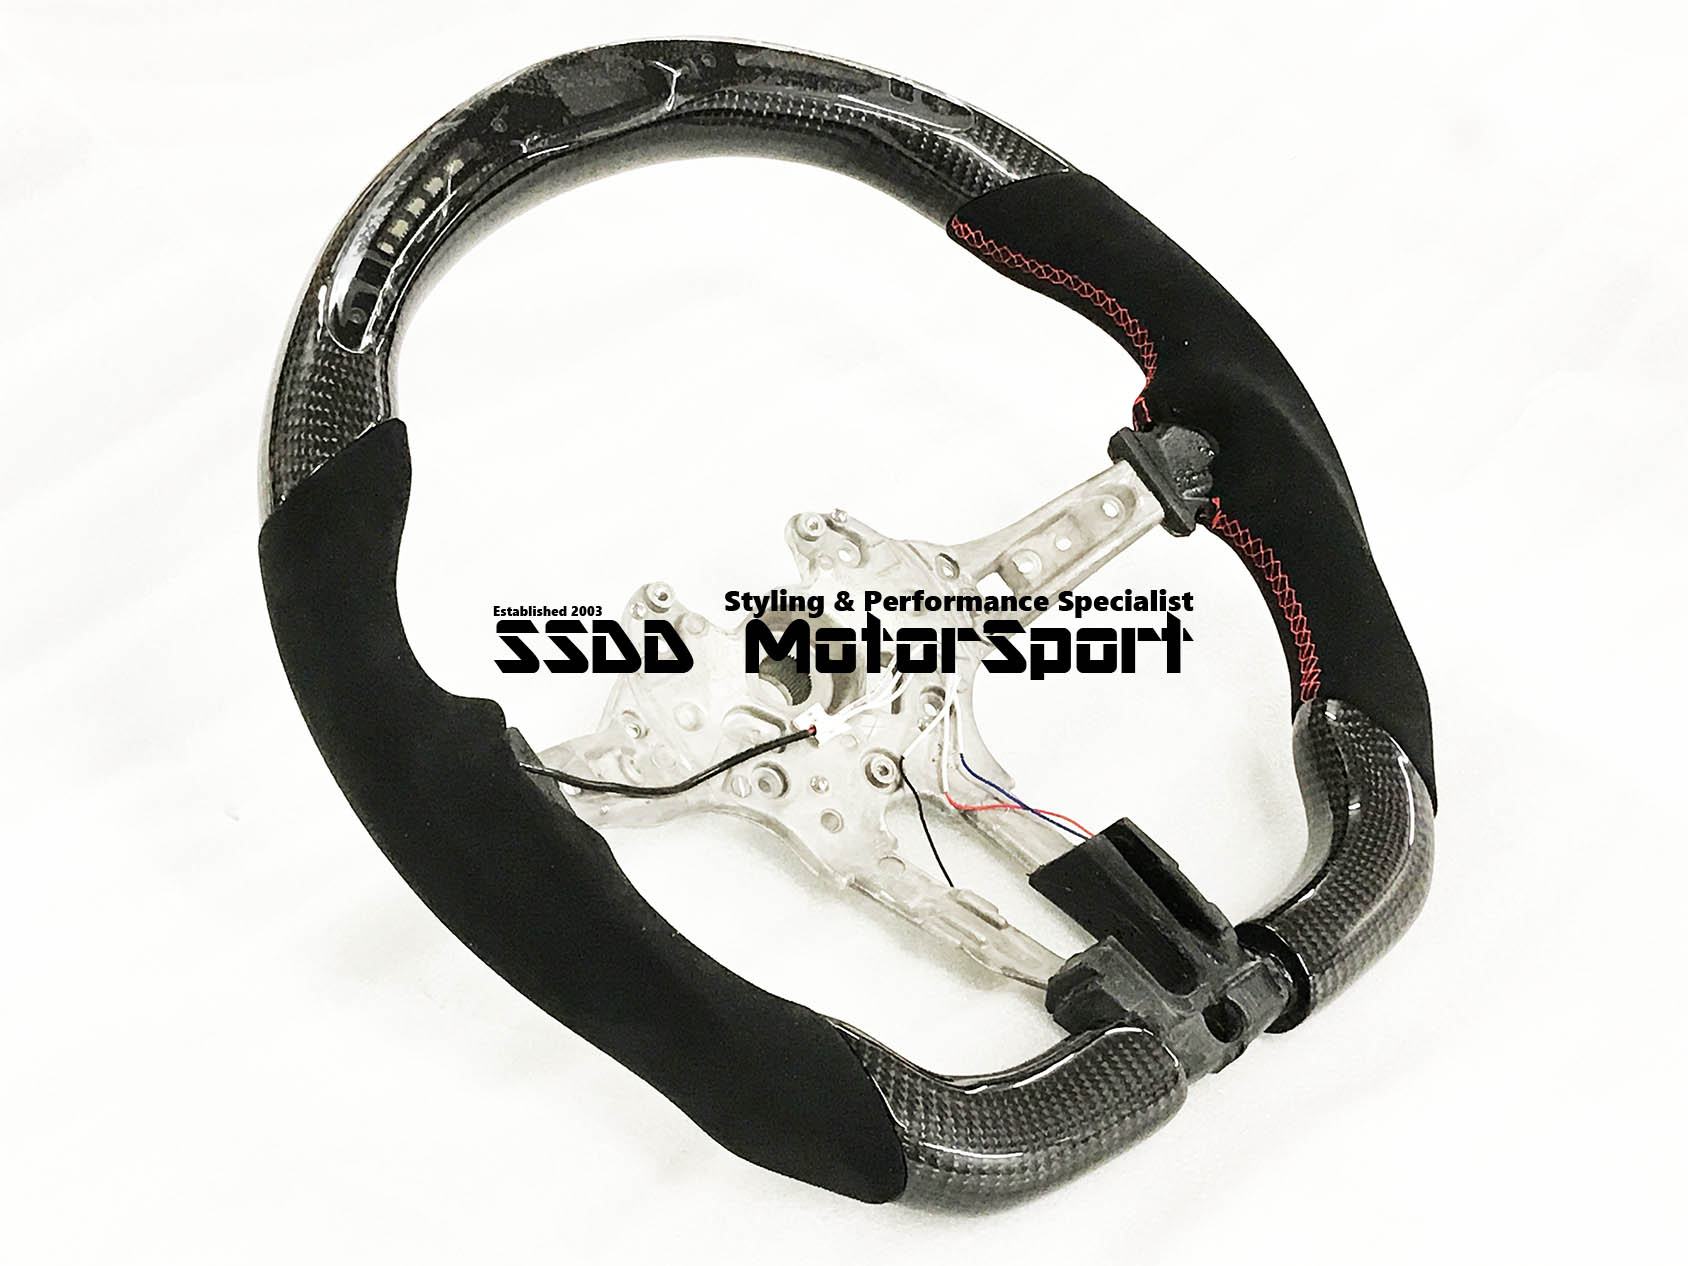 bmw-f20-f30-f32-f22-1-2-3-4-series-carbon-without-lcd-race-display-flat-bottom-flat-bottom-steering-wheel-red-stitching.jpg